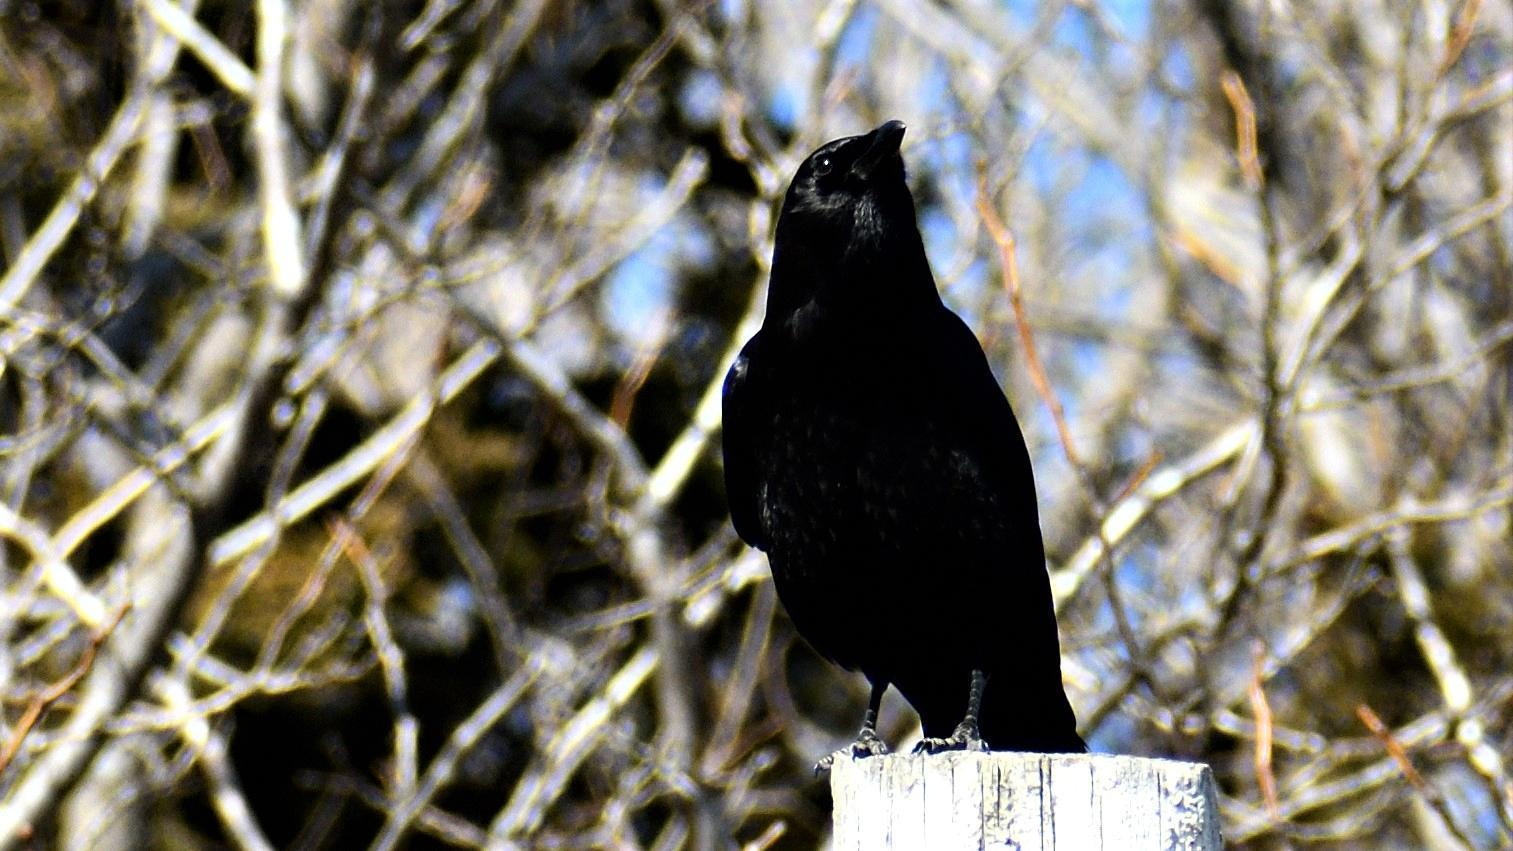 American Crow Photo by RM Beck